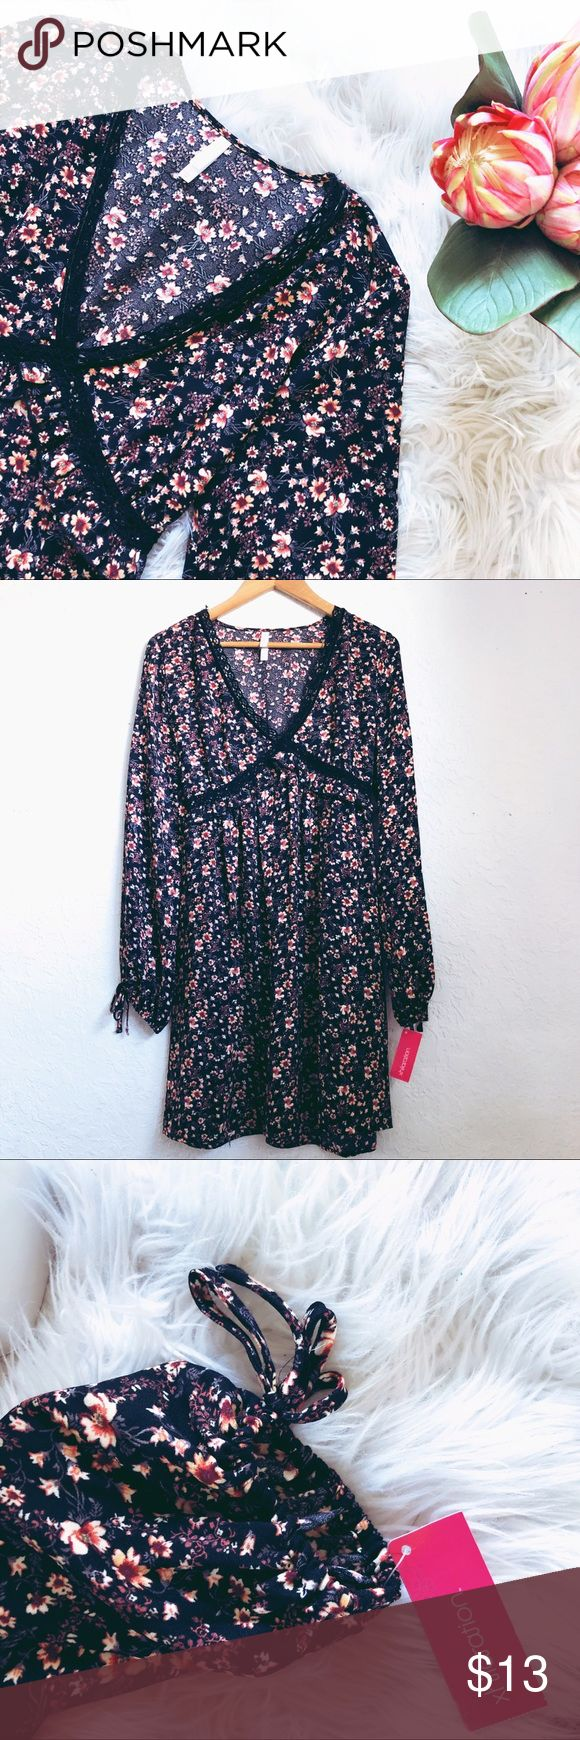 Floral Dress Brand new with tags! Perfect boho dress to pair with short booties and shown! Could also be paired with tights for the winter time. Please let me know if you have any further questions! Xhilaration Dresses Midi